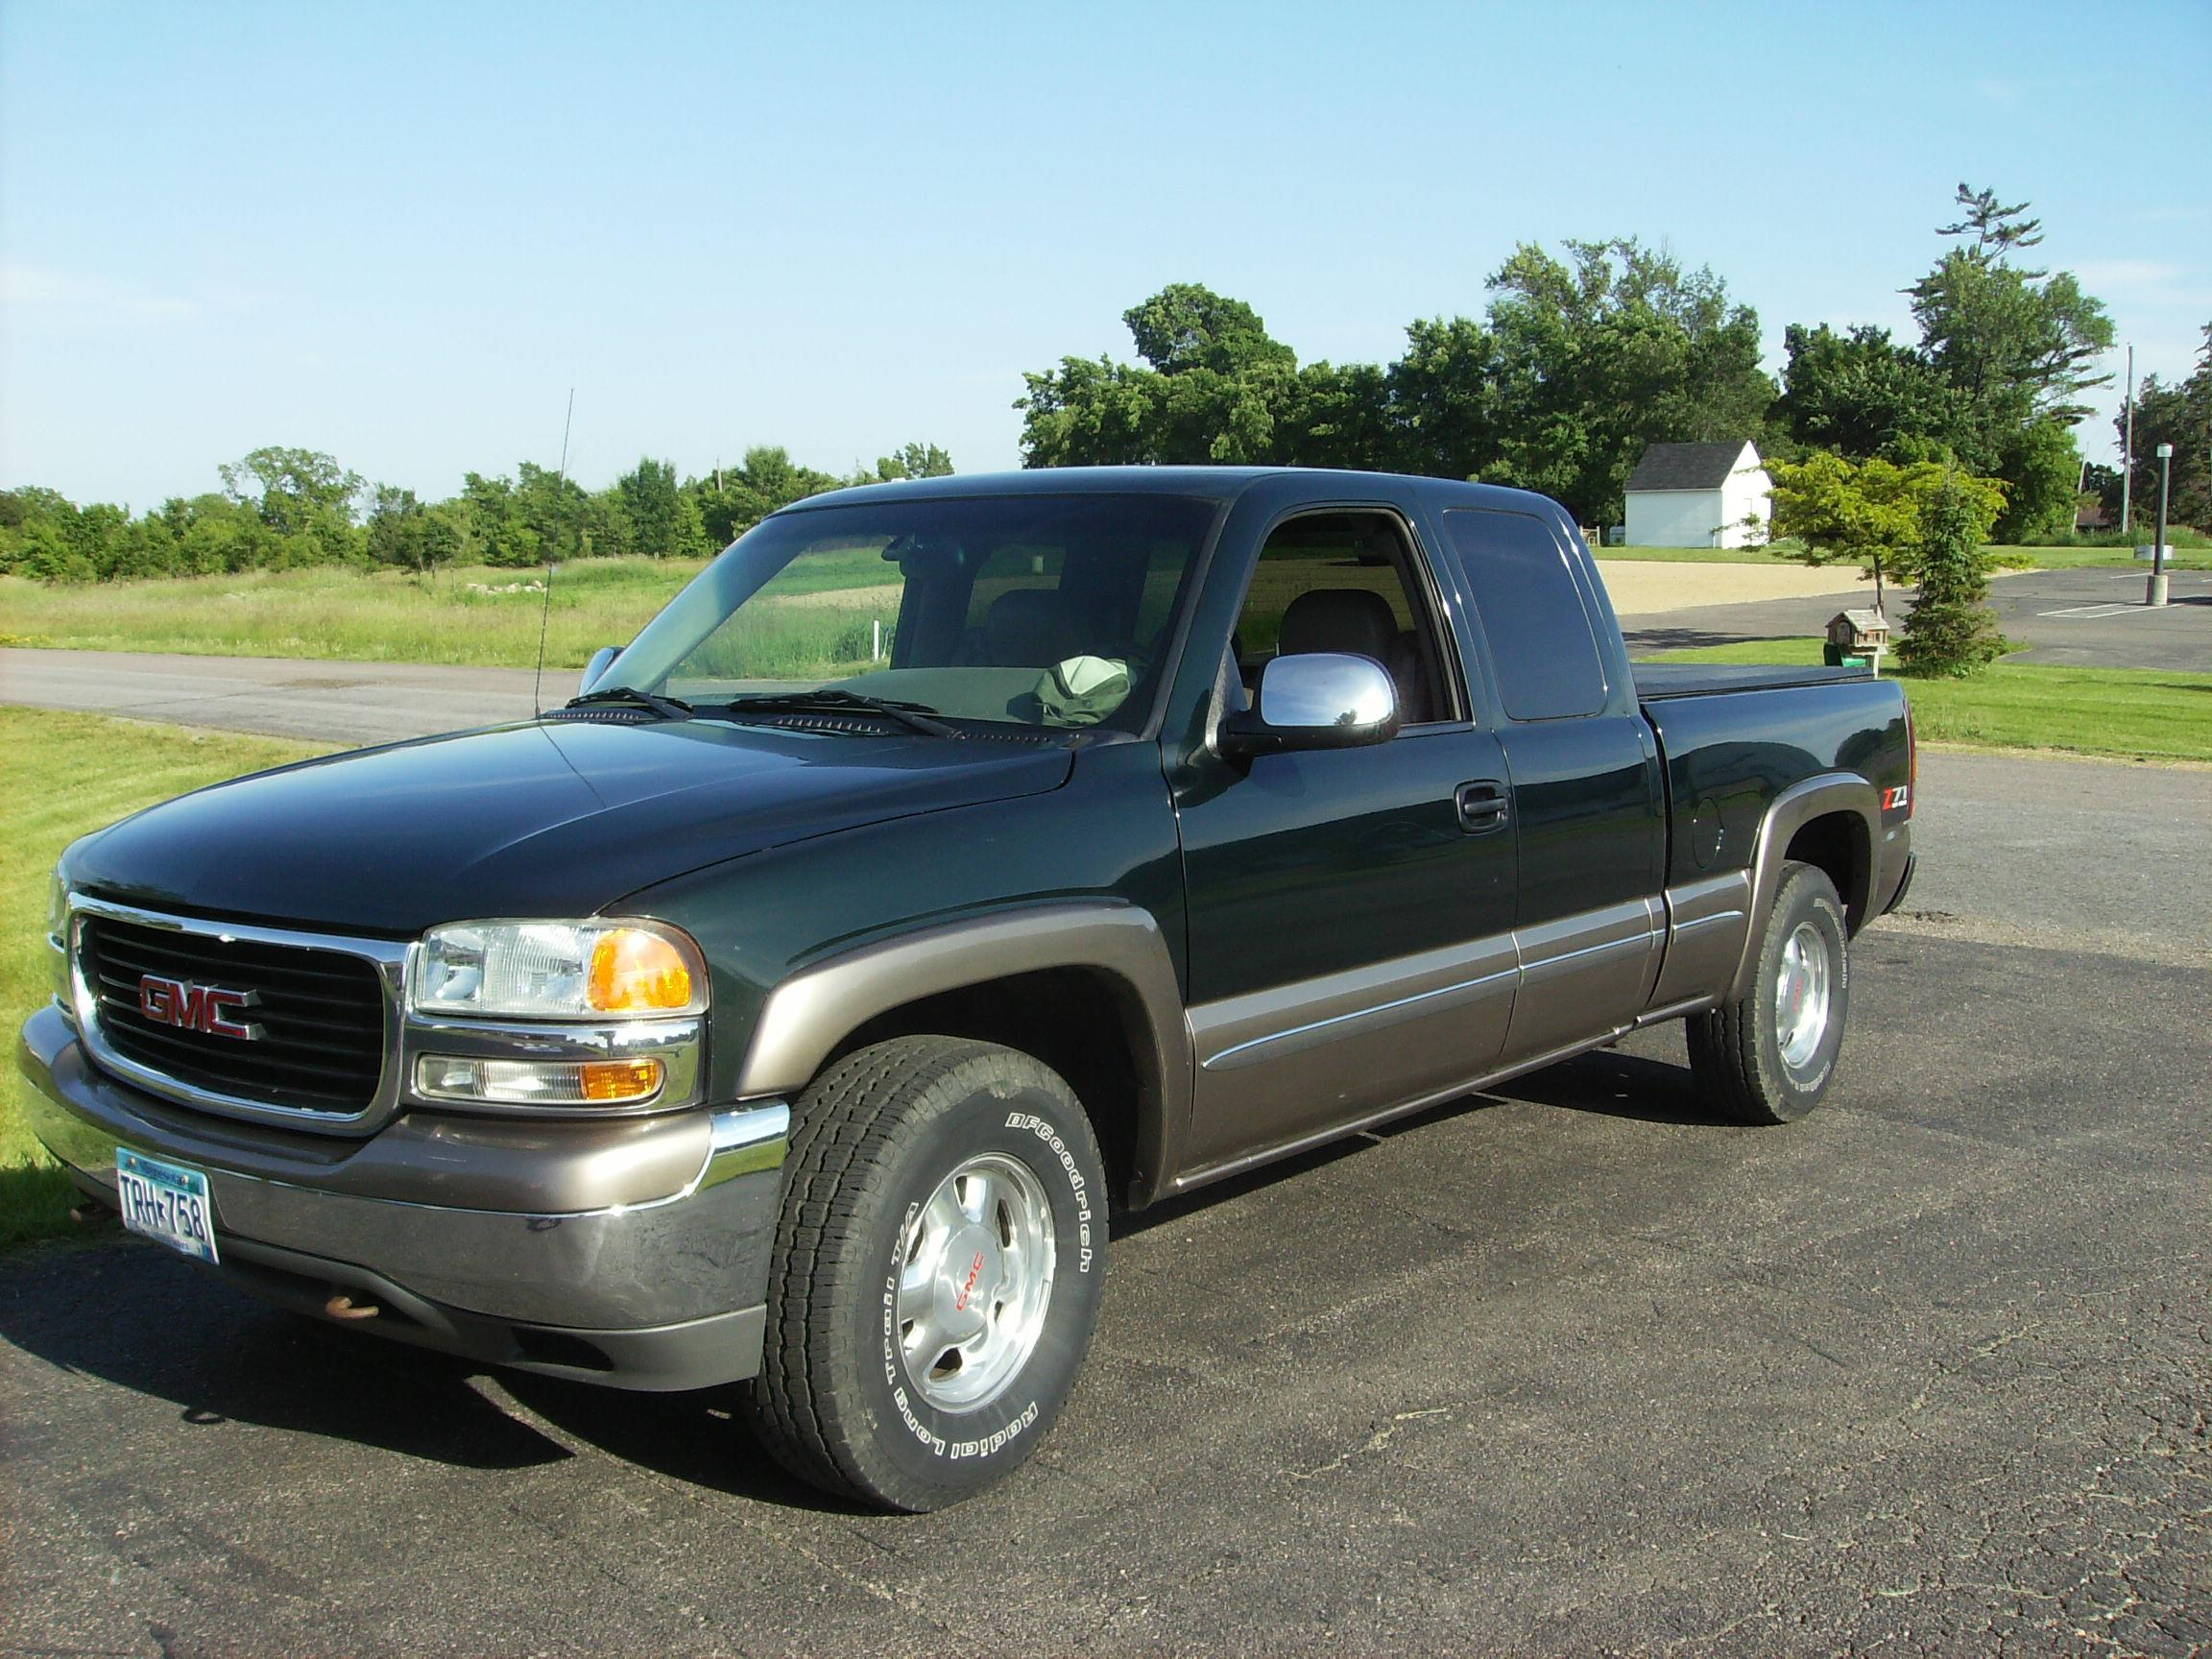 2002 Gmc Sierra 1500 Extended Cab View All 2002 Gmc